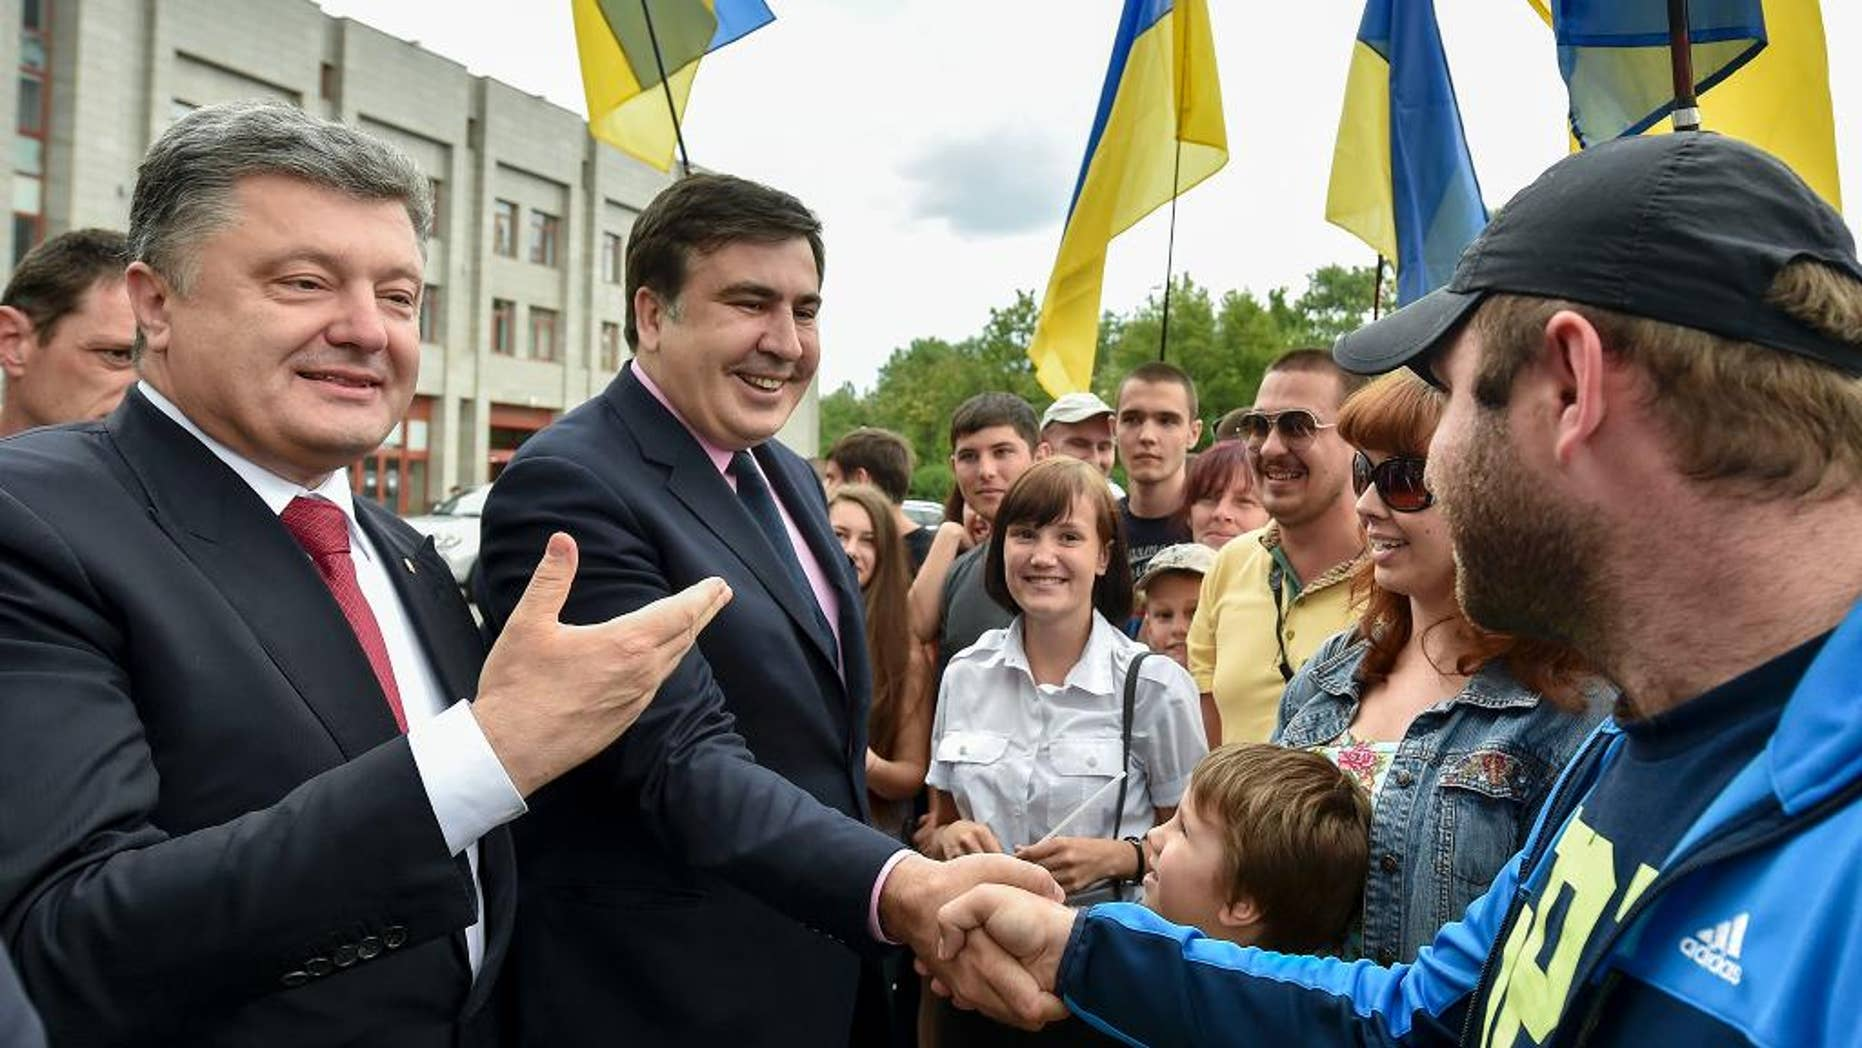 Citizens greet Ukrainian President Petro Poroshenko, left, and Mikhail Saakashvili, second left, a newly appointed governor of Odessa region, in Odessa, Ukraine, Saturday, May 30, 2015. Former Georgian President Mikhail Saakashvili on Saturday was appointed governor of Ukraine's troubled south-west Odessa region. (AP Photo/Mykola Lazarenko, Presidential Press Service Pool Photo via AP)